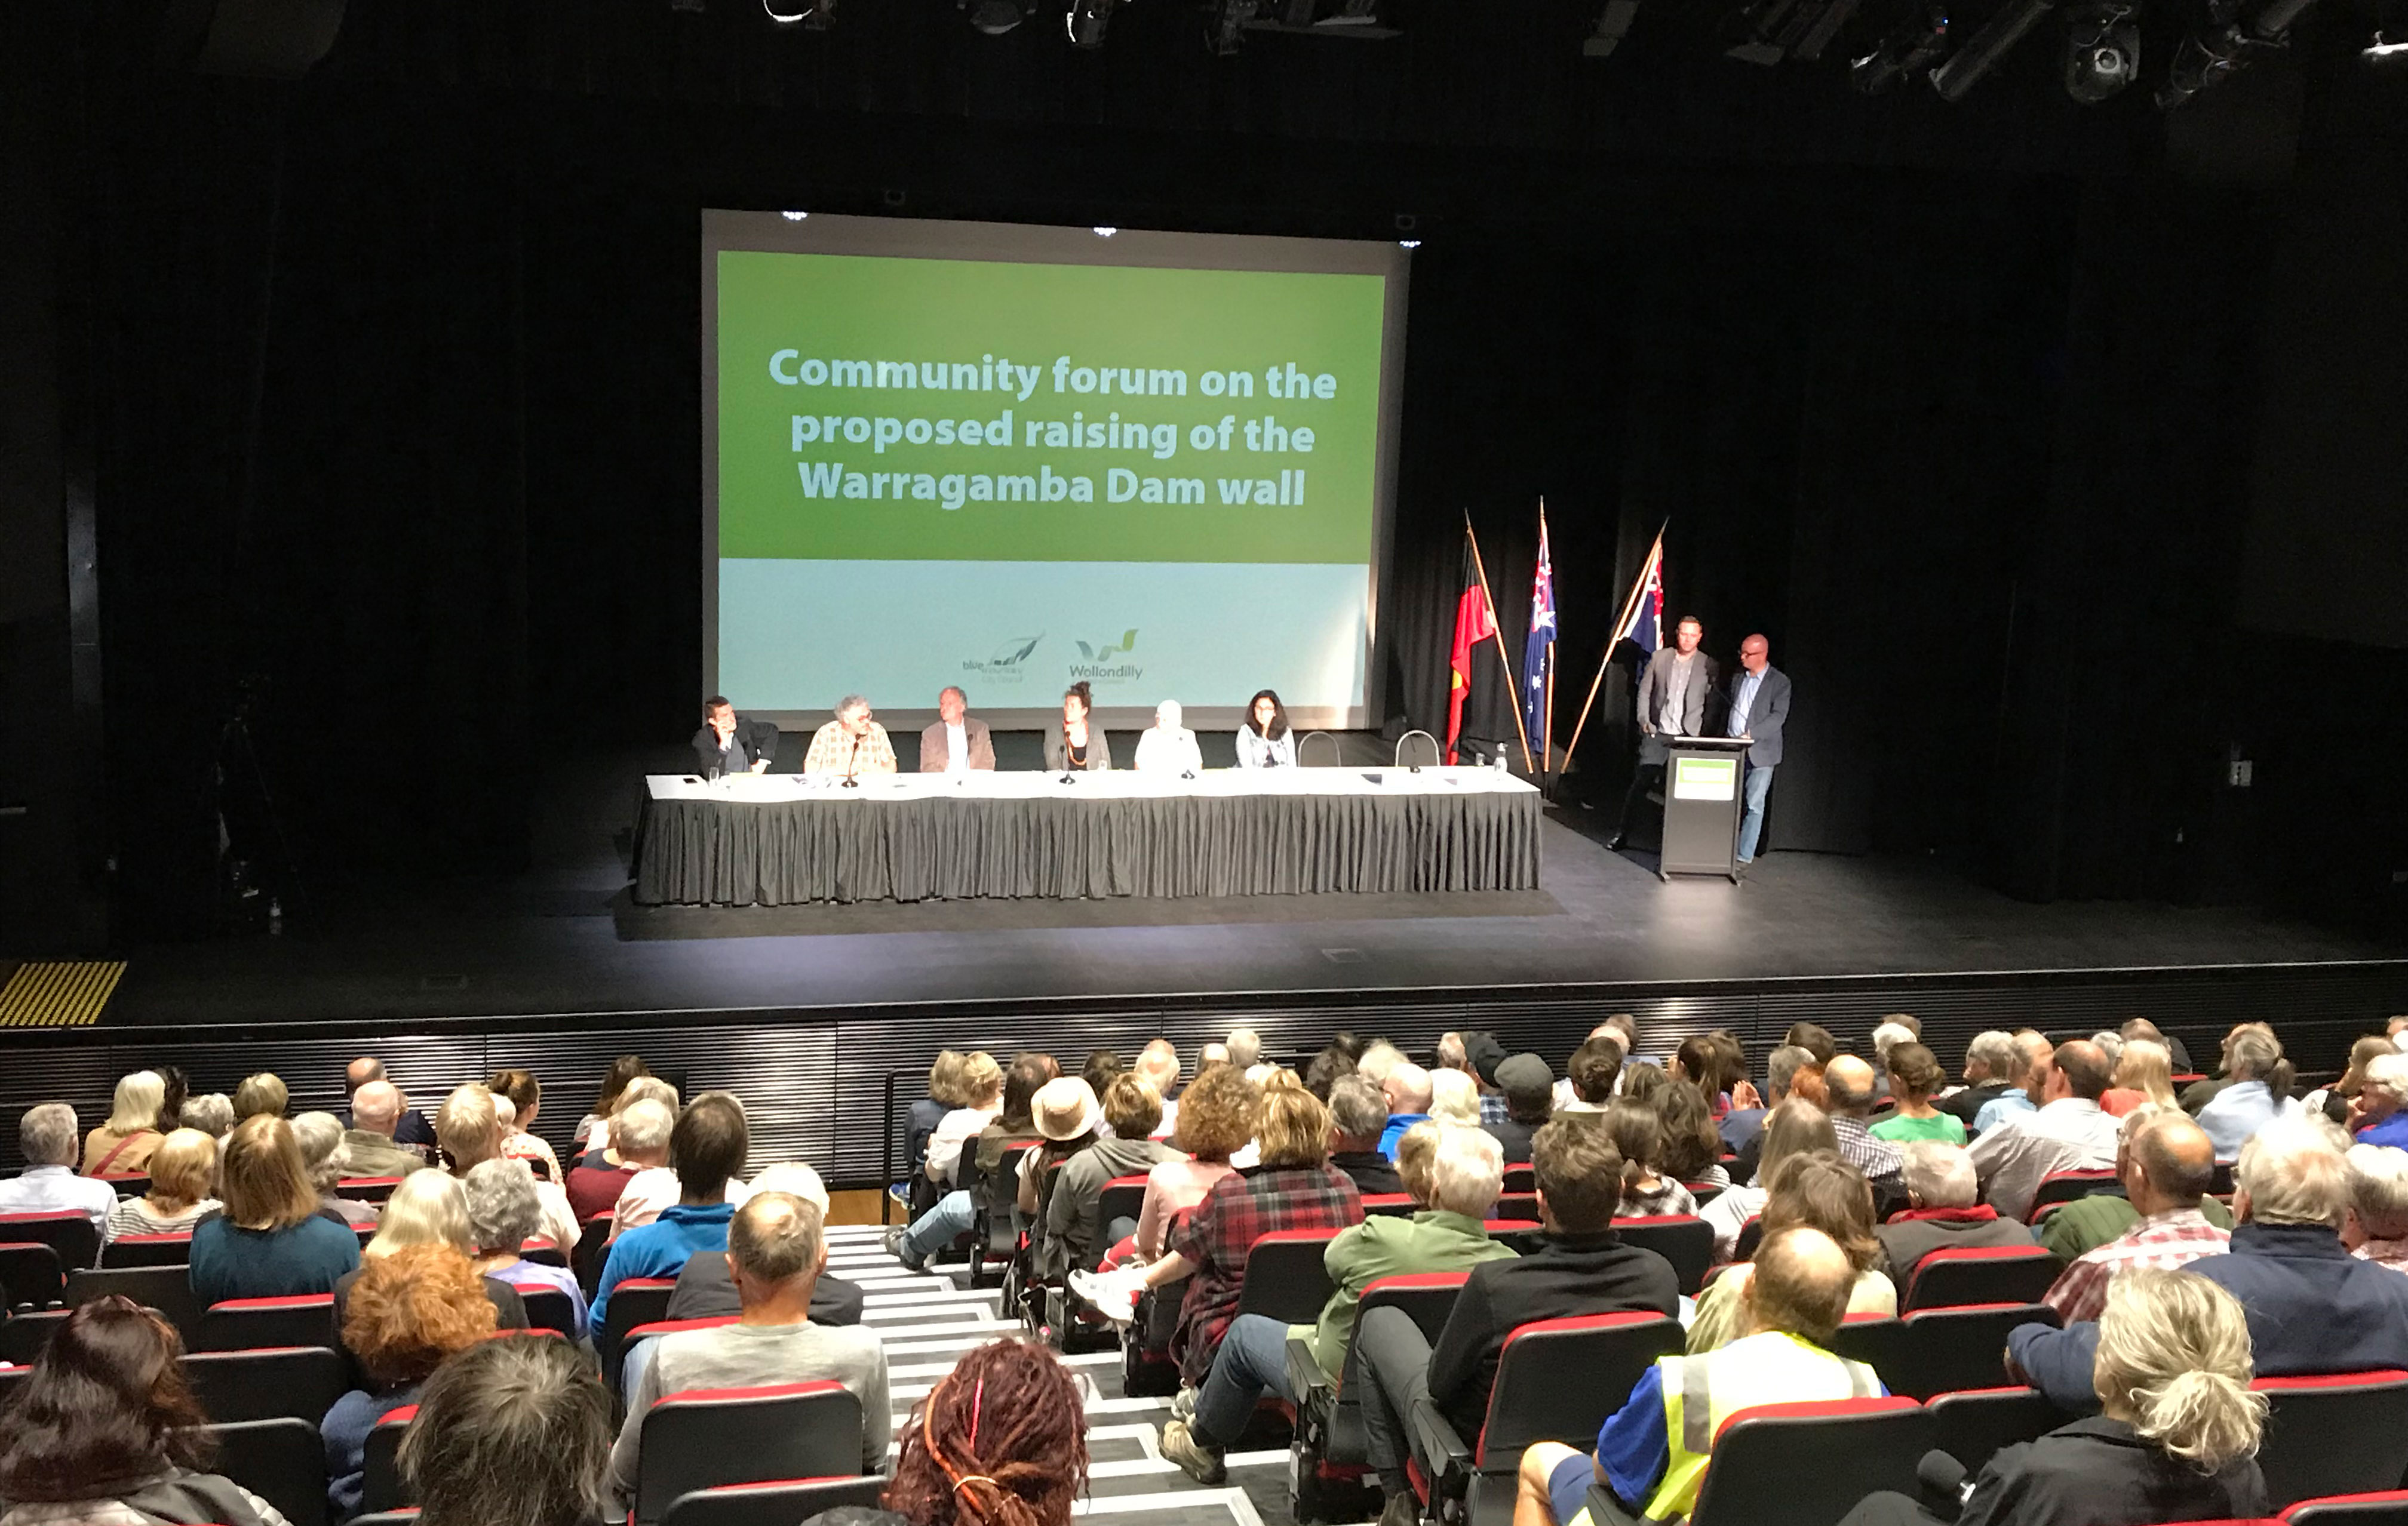 Community Forum on Warragamba Dam